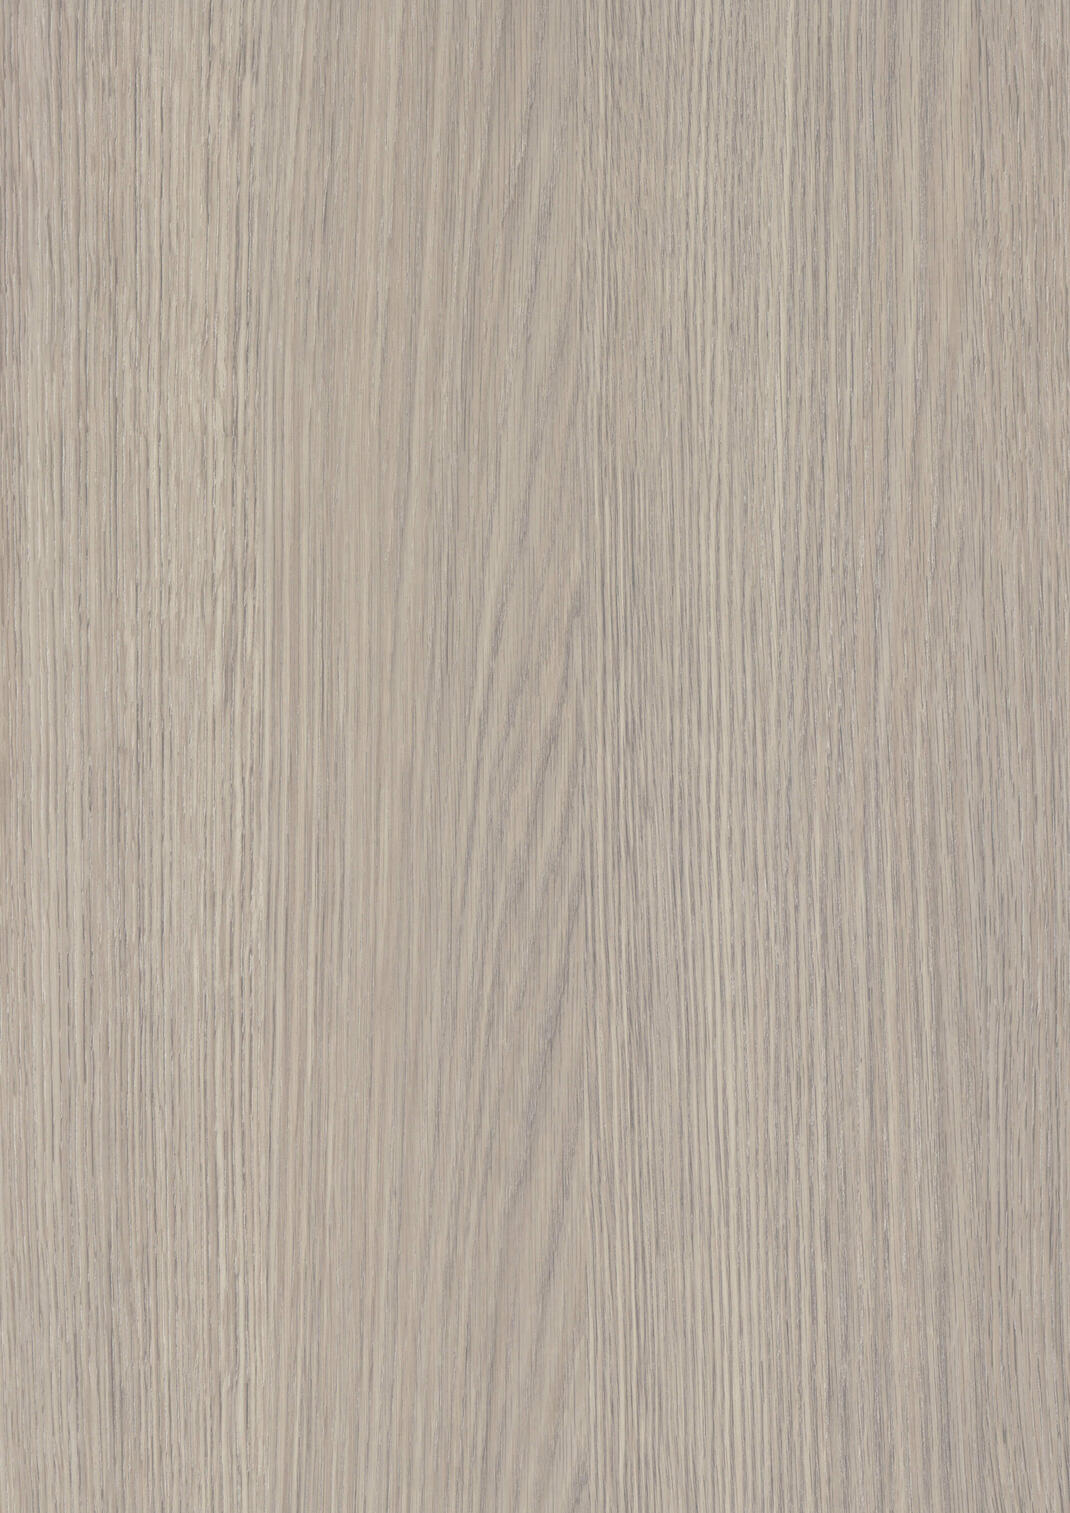 Limed OAK GREY - 3 - фото